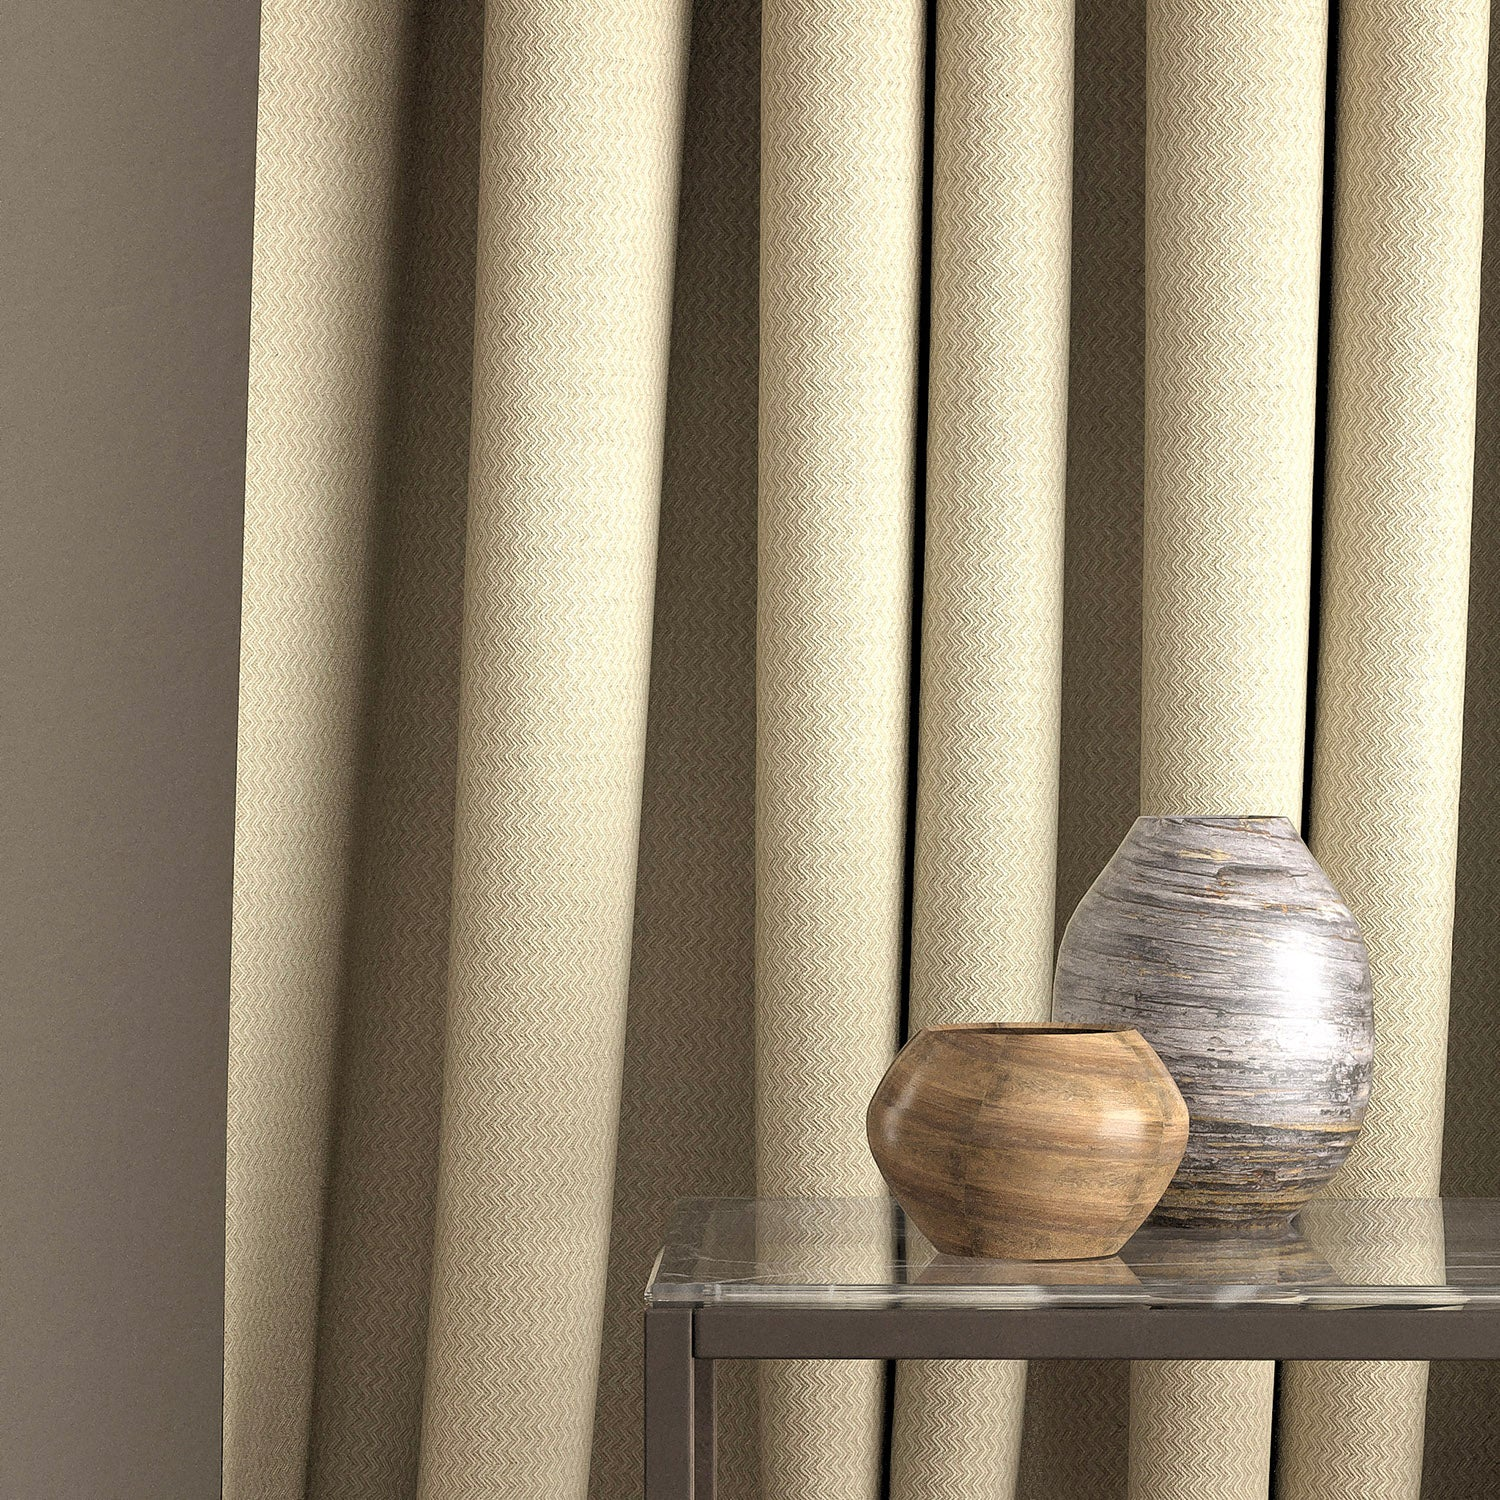 Curtain in a oatmeal and neutral zig zag weave fabric with a stain resistant finish